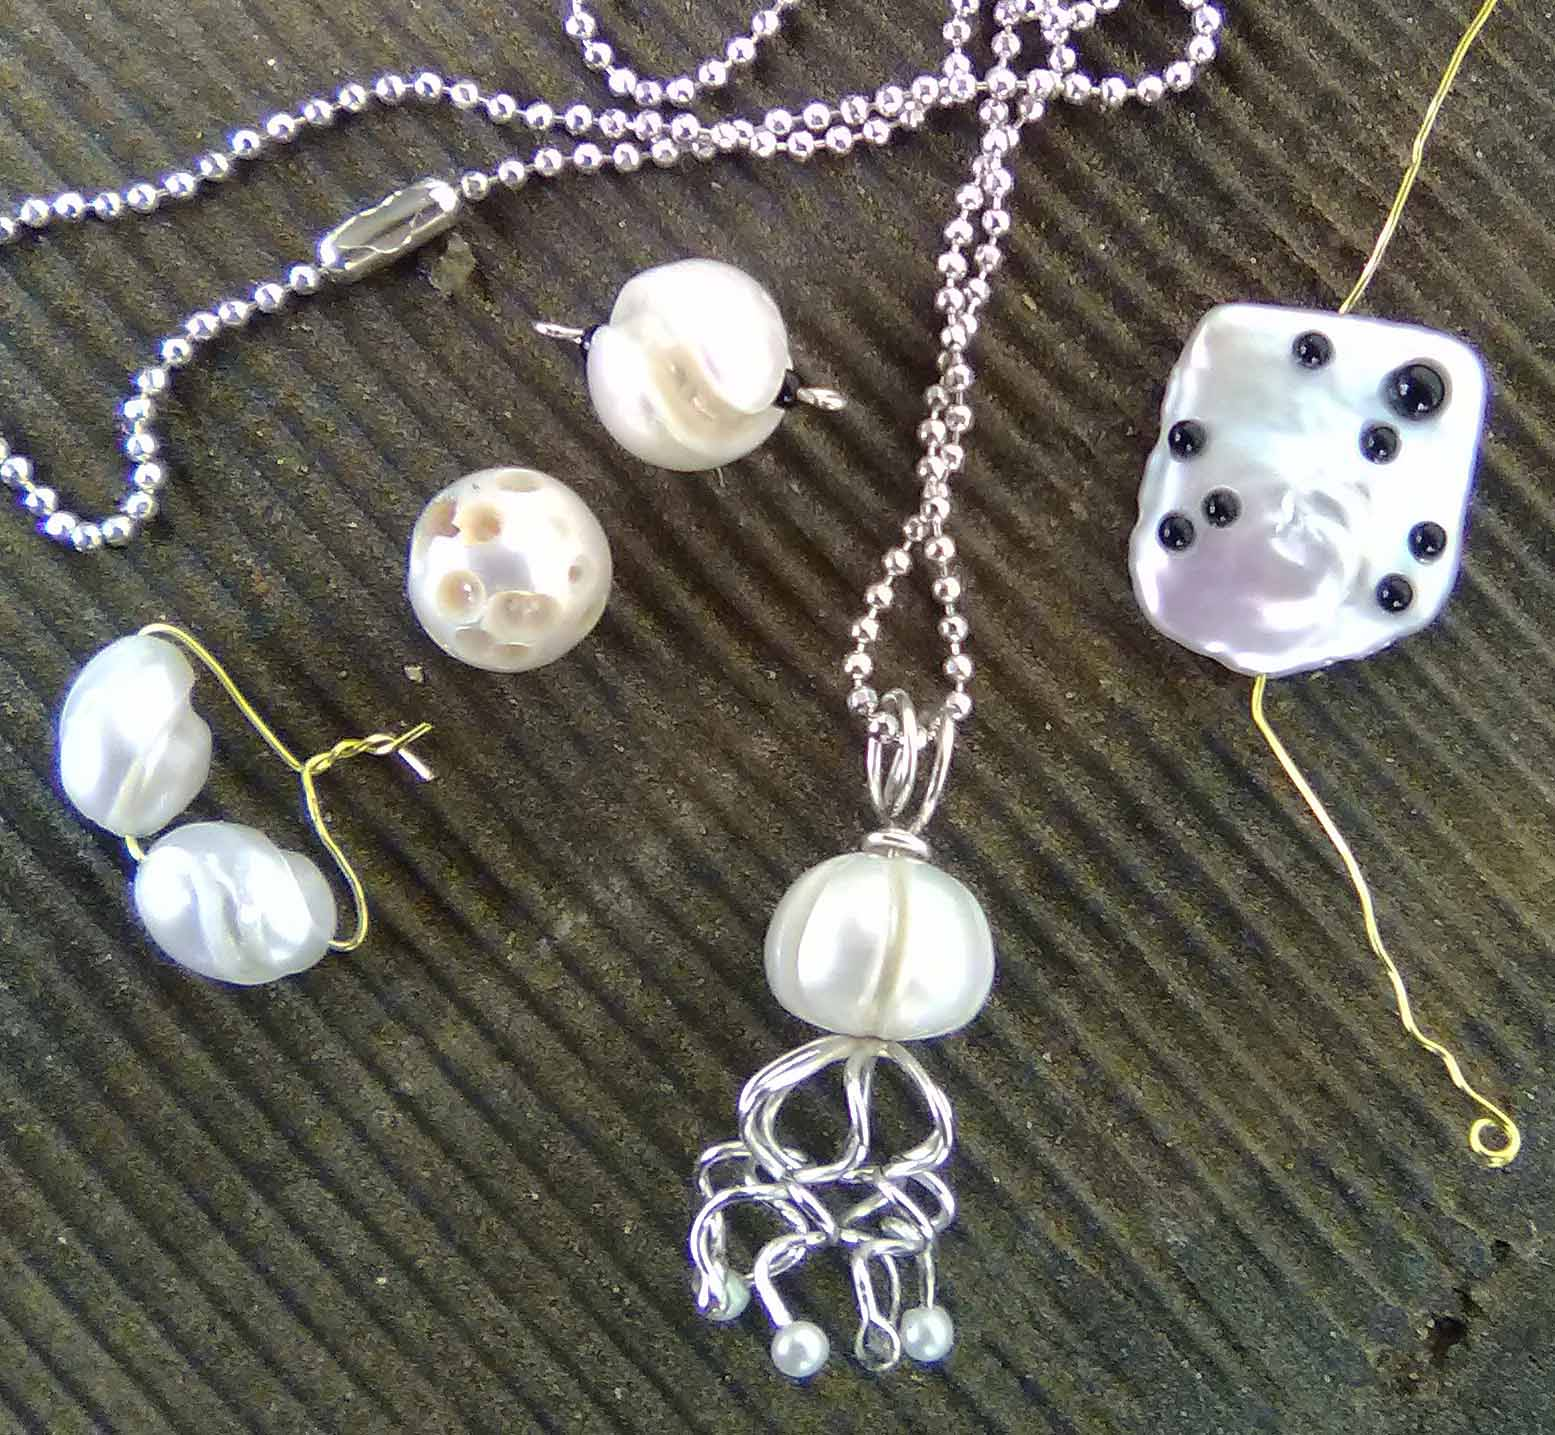 How to Teach Jewelry Making and Learn While Teaching ...